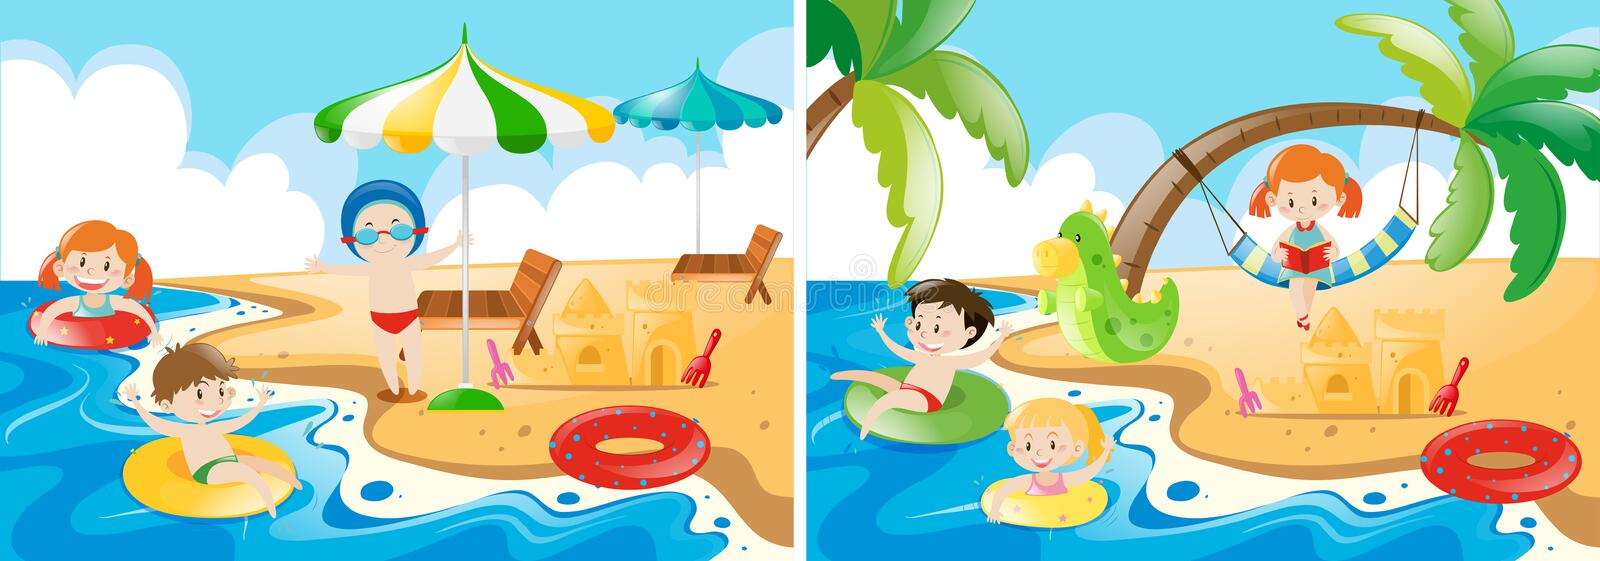 beach scenes with kids playing stock vector illustration of beach rh dreamstime com beach scenes clip art beach scene clip art free